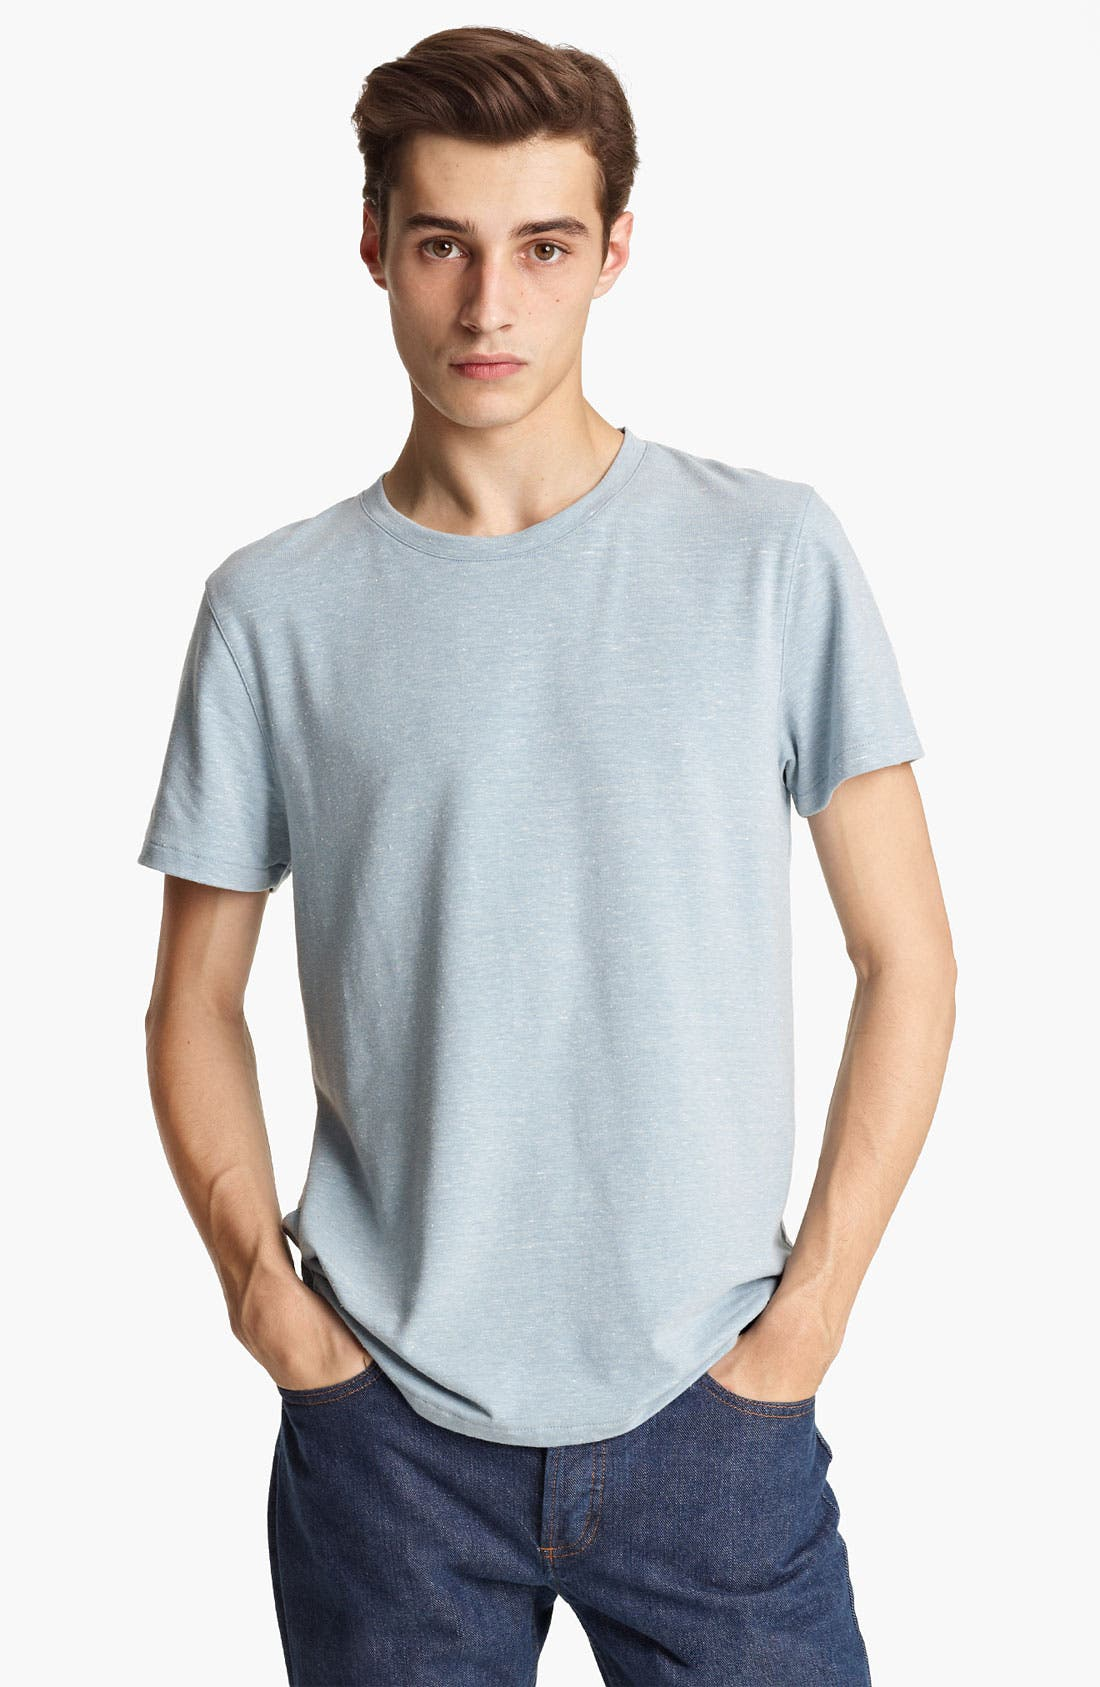 Alternate Image 1 Selected - A.P.C. Heathered T-Shirt